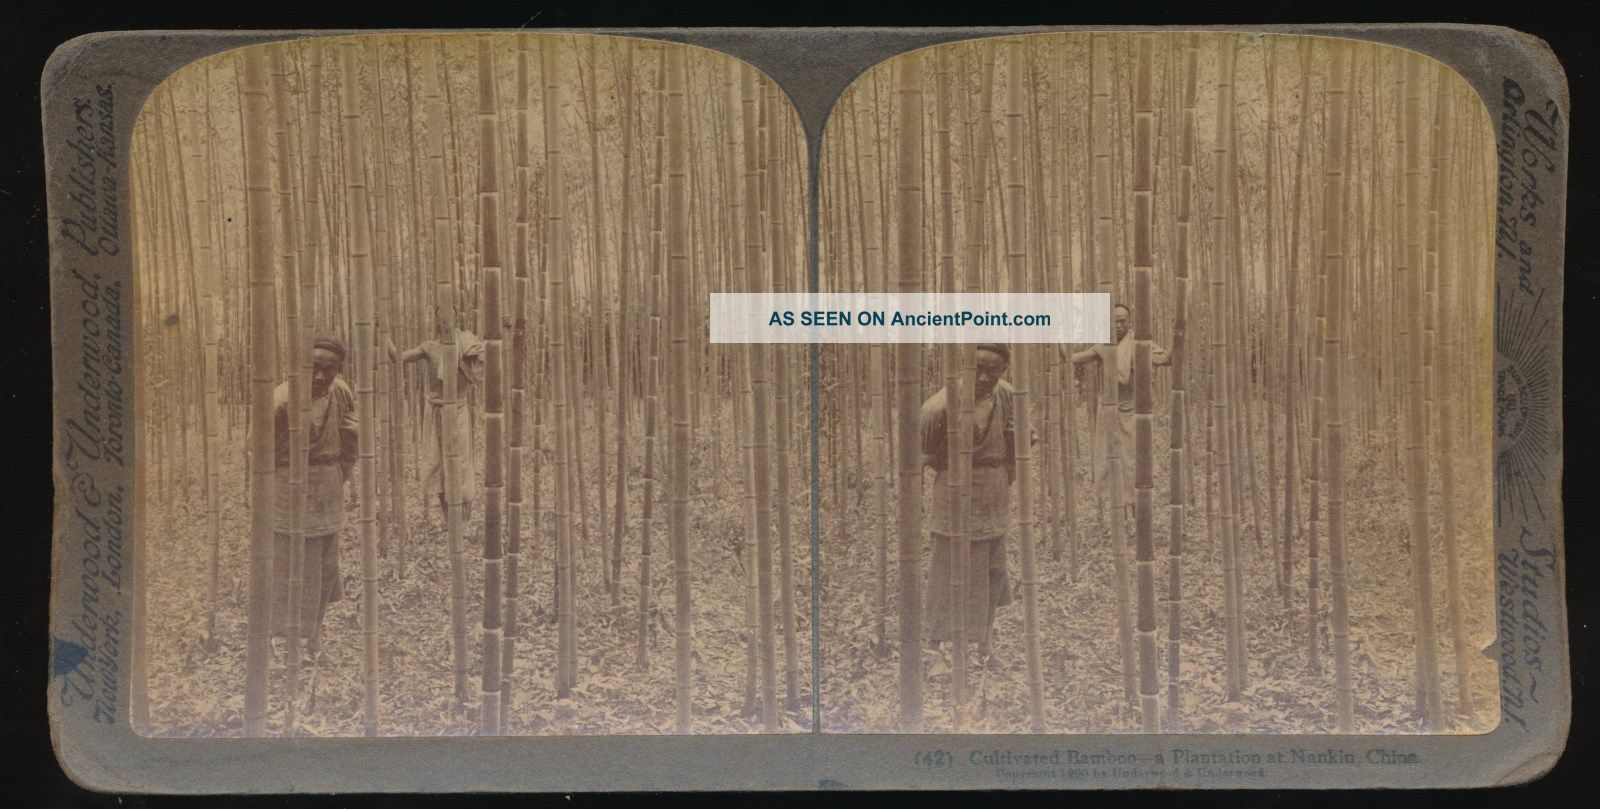 1900 Real Photo Stereoview Cultivated Bamboo Plantation Grove Near Nankin China Other Antique Science Equip photo